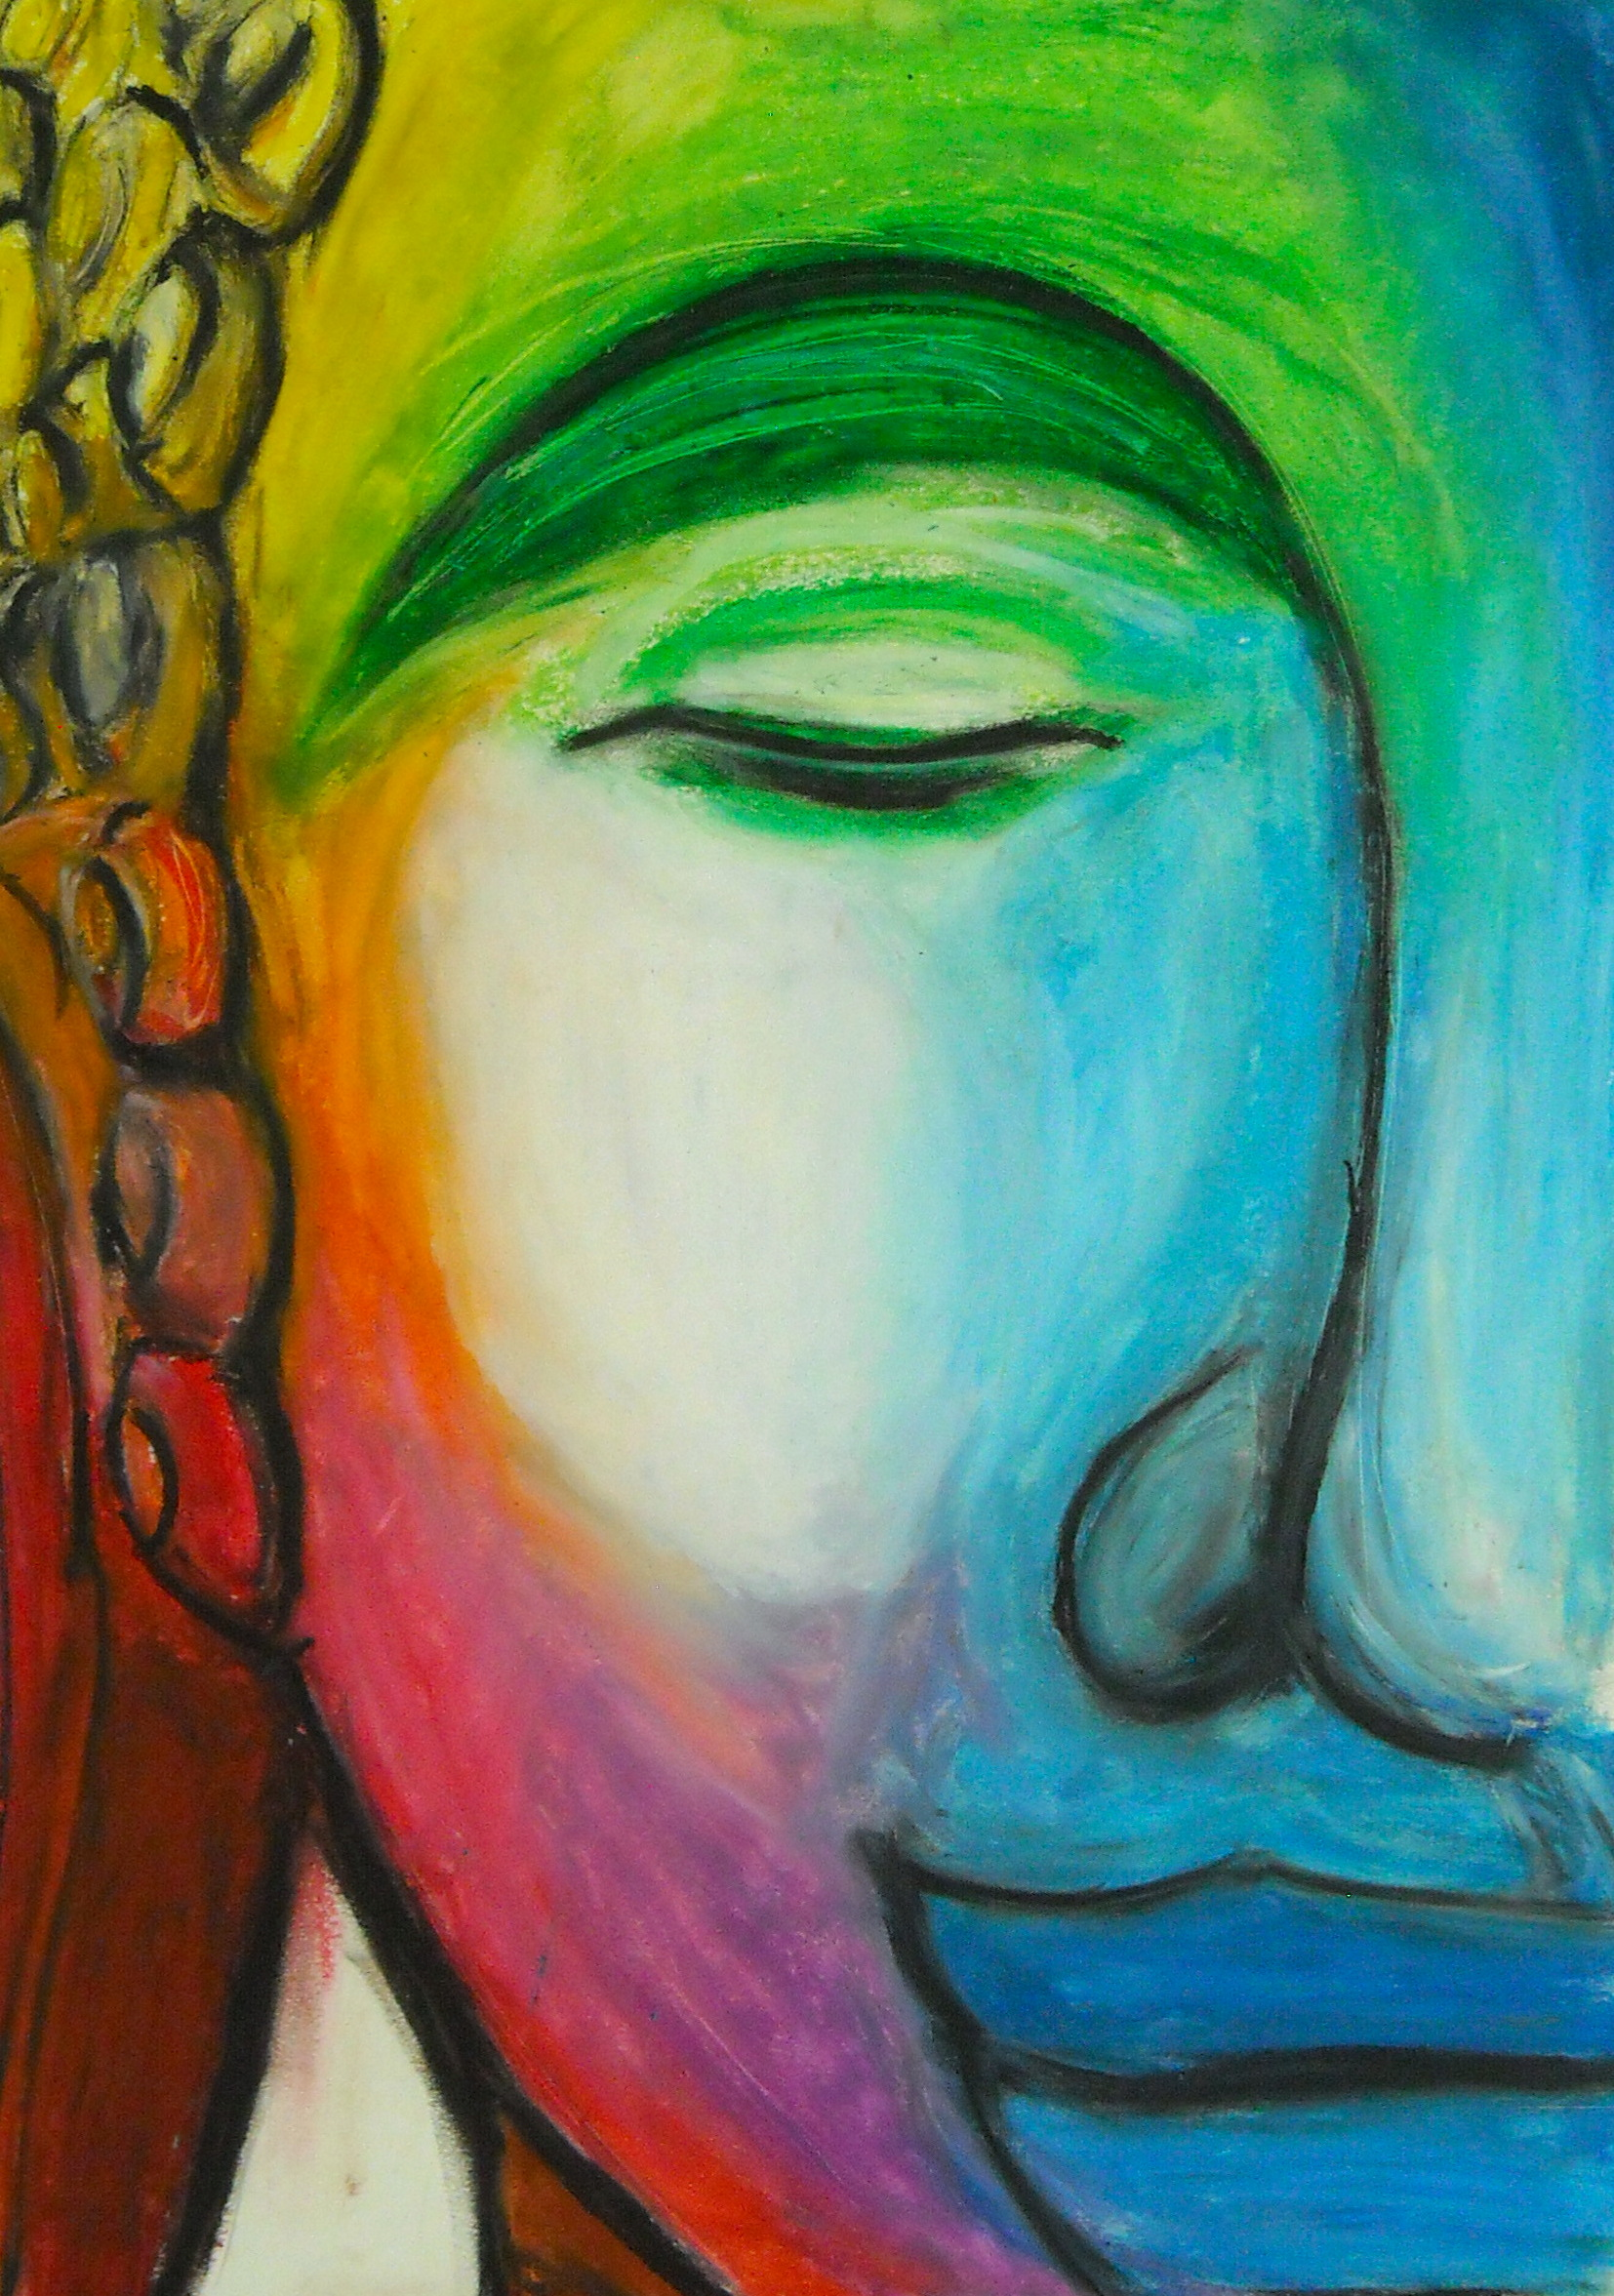 Smiling Buddha of Many Colors, Oil pastel